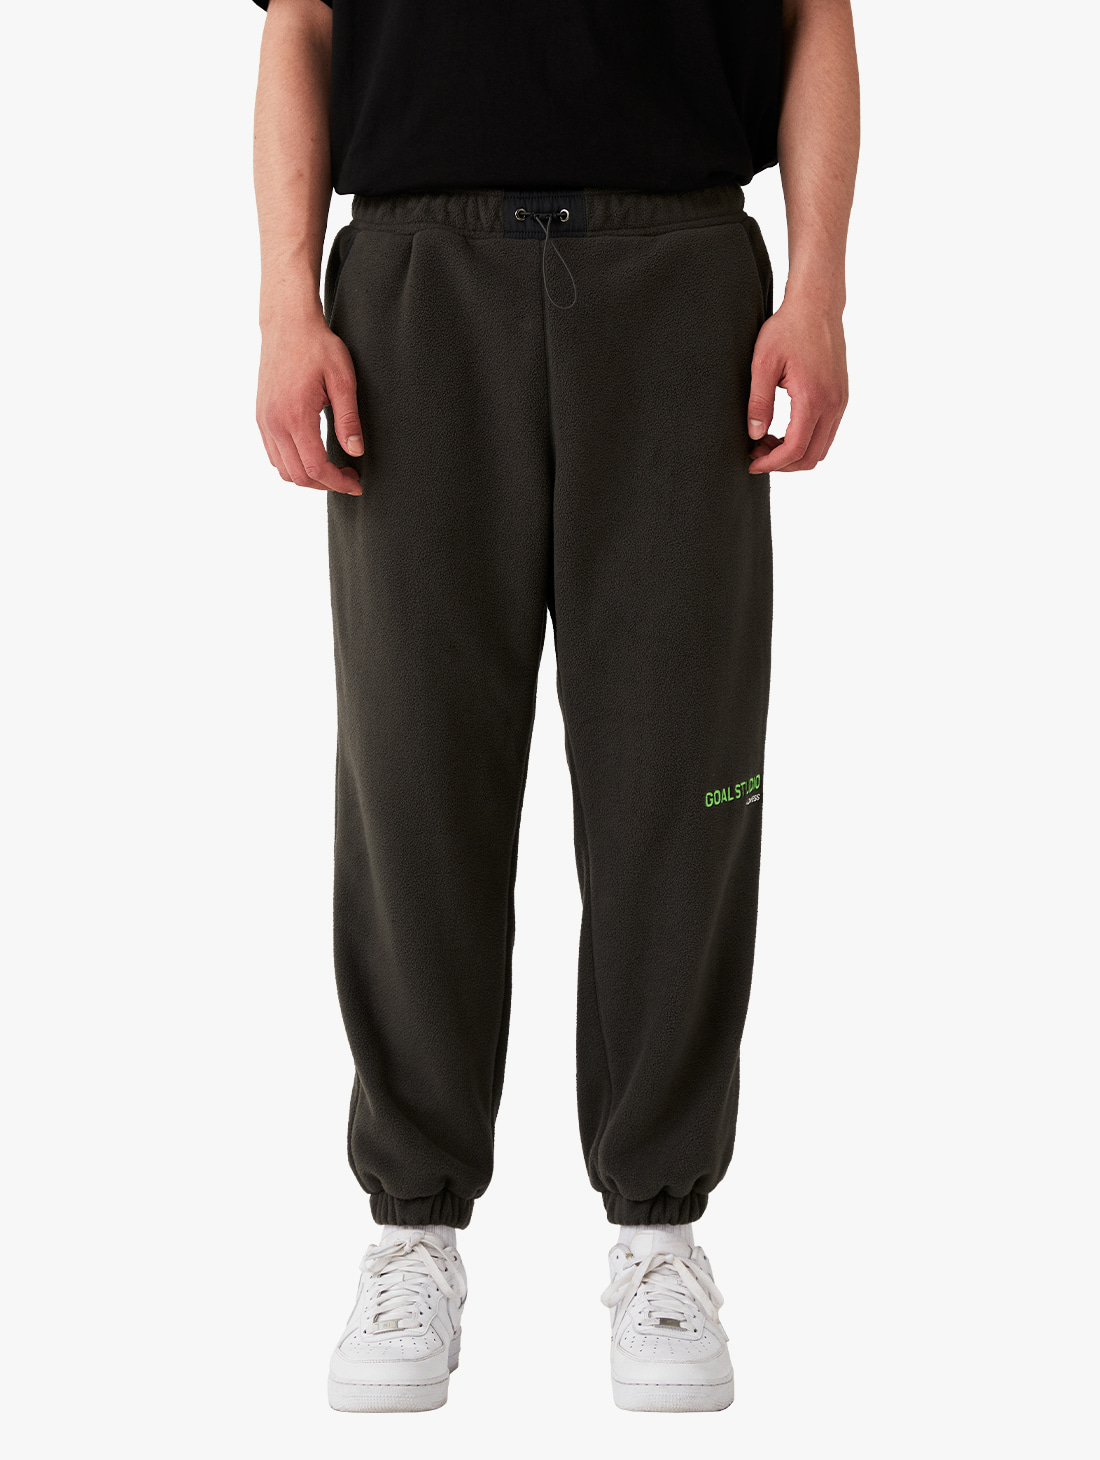 GOALSTUDIO FLEECE JOGGER PANTS (2 Colors)